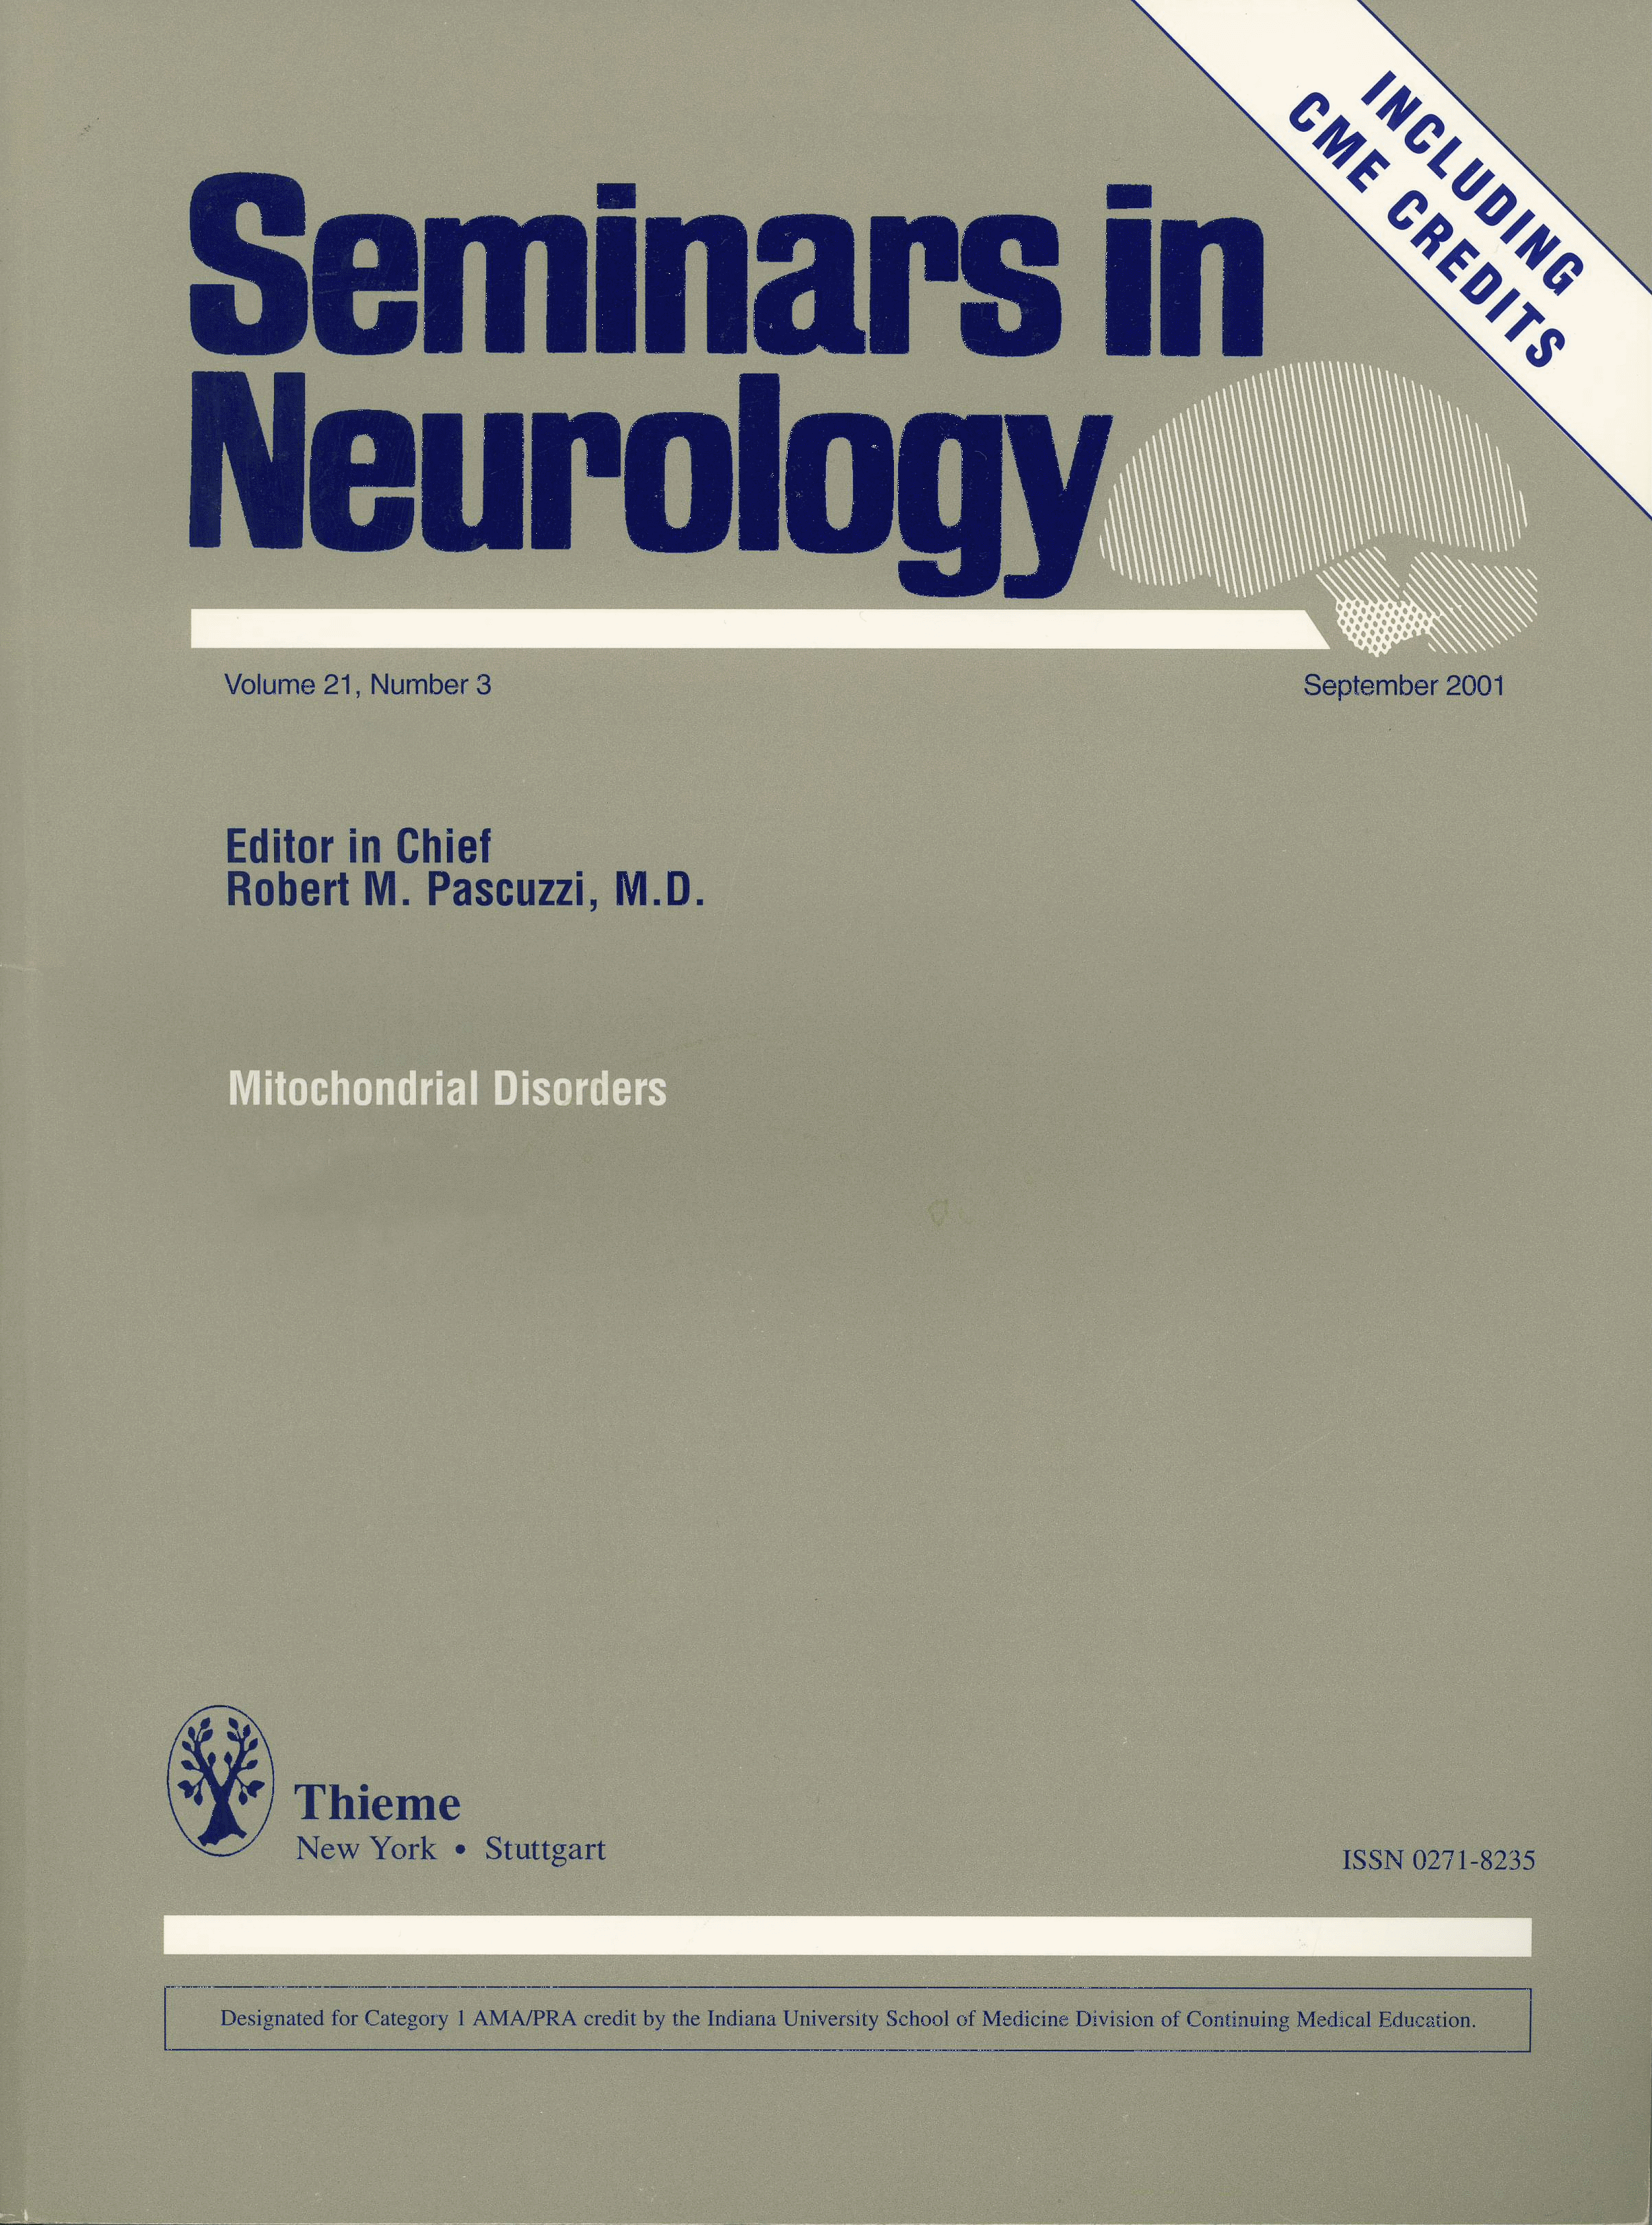 2001_Seminars_in_Neurolog_pg_303.png